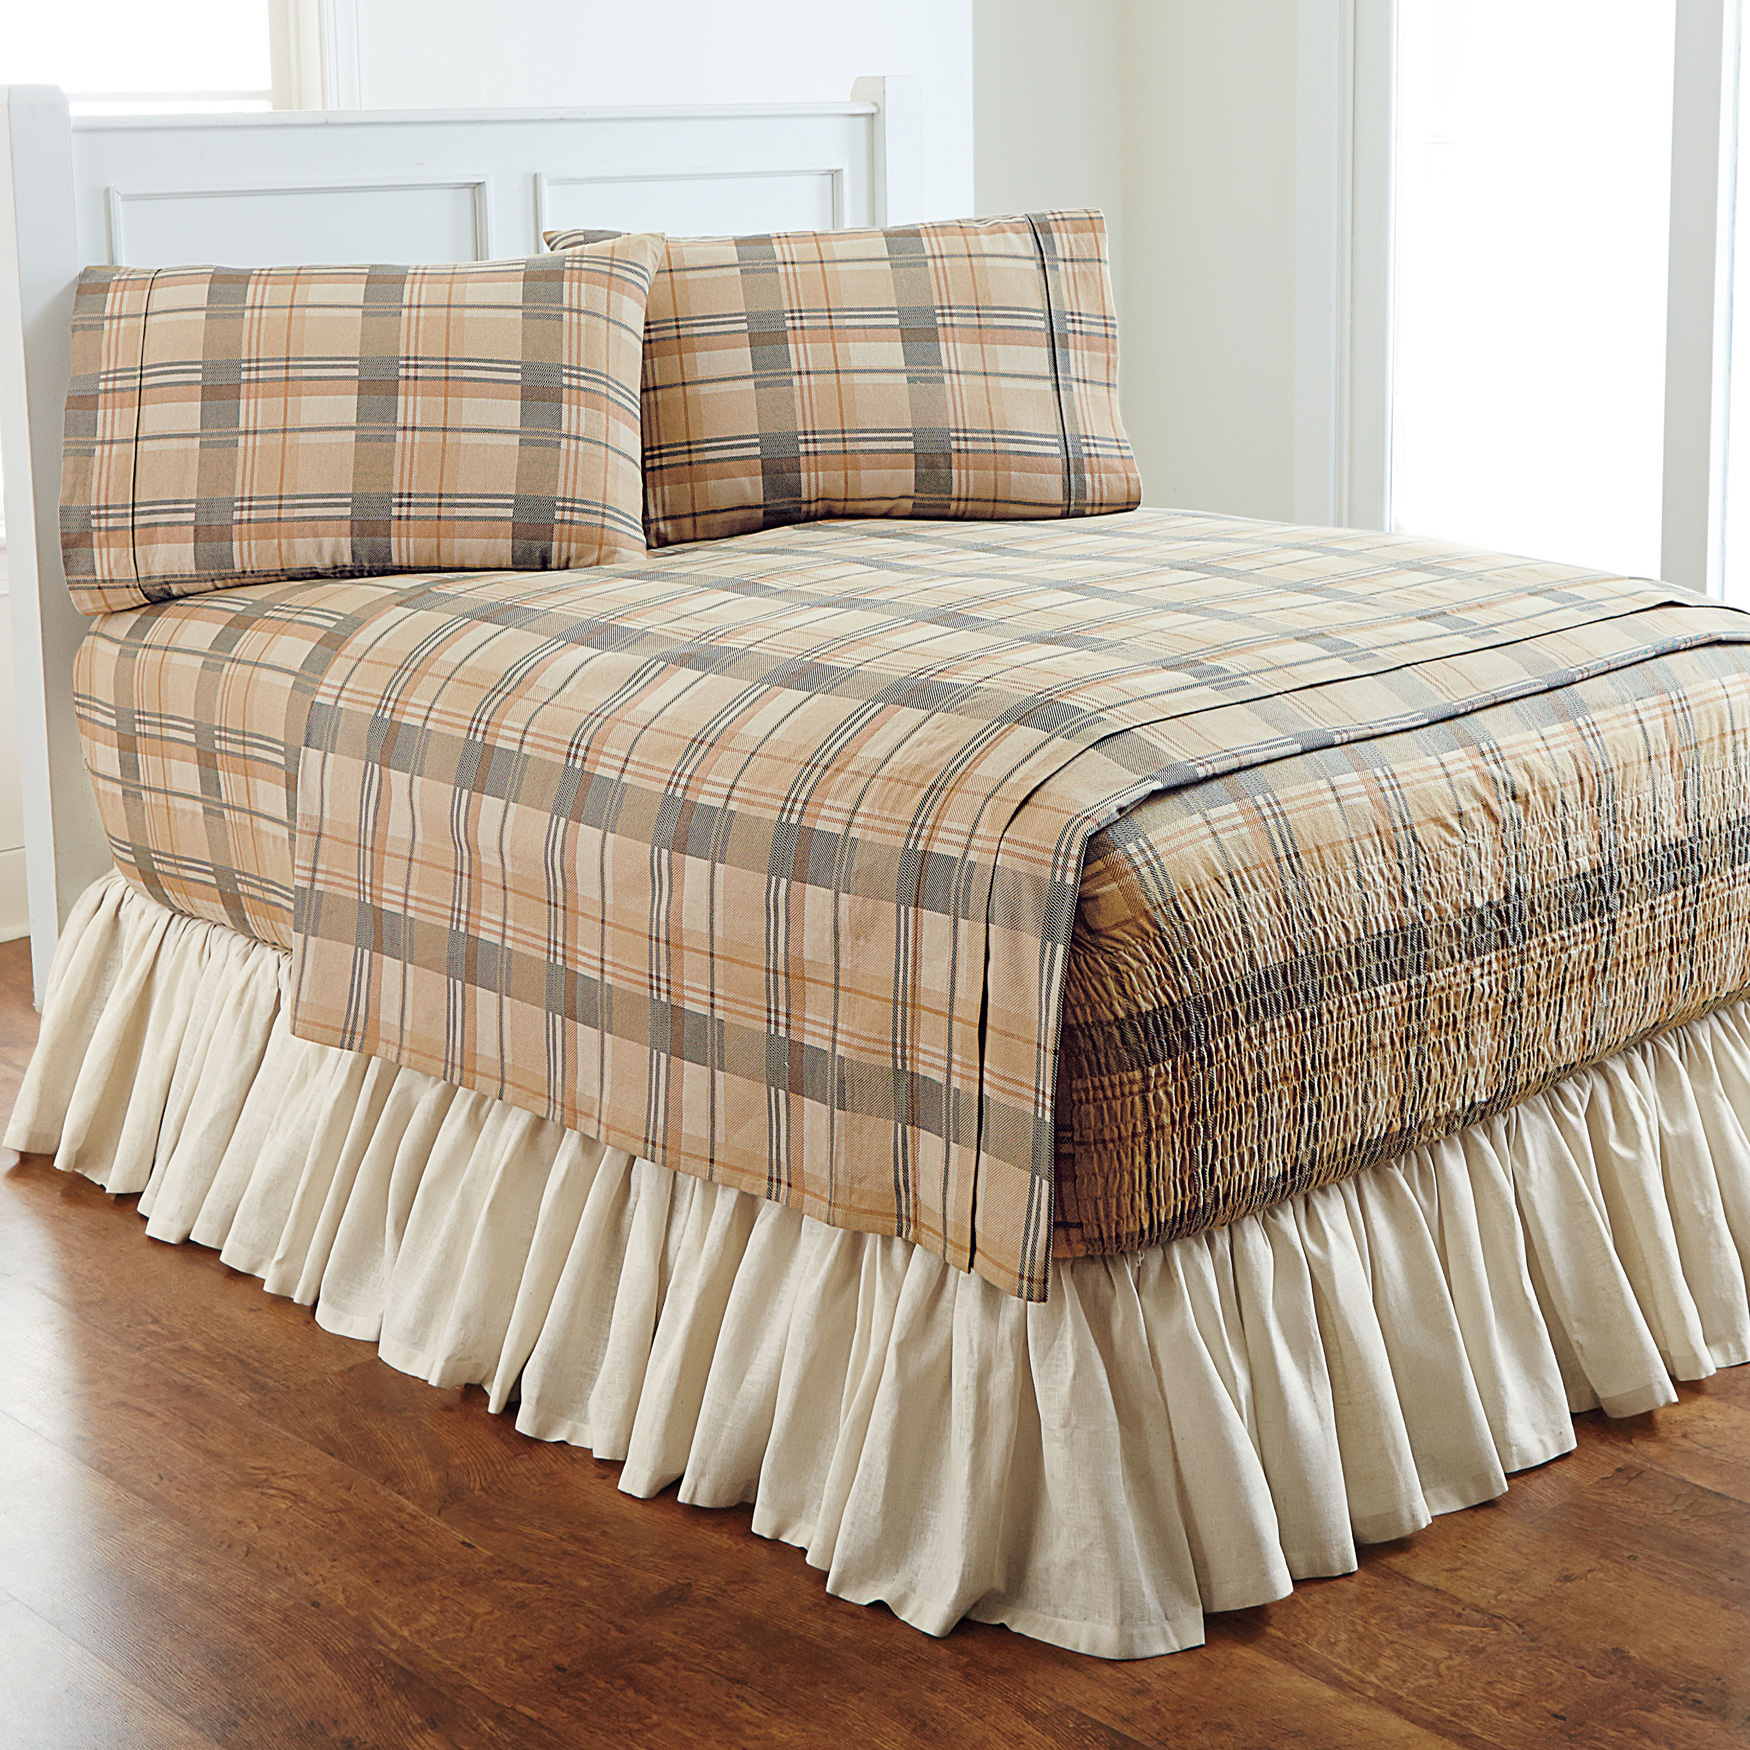 Bed Tite™ Flannel Sheet Set,